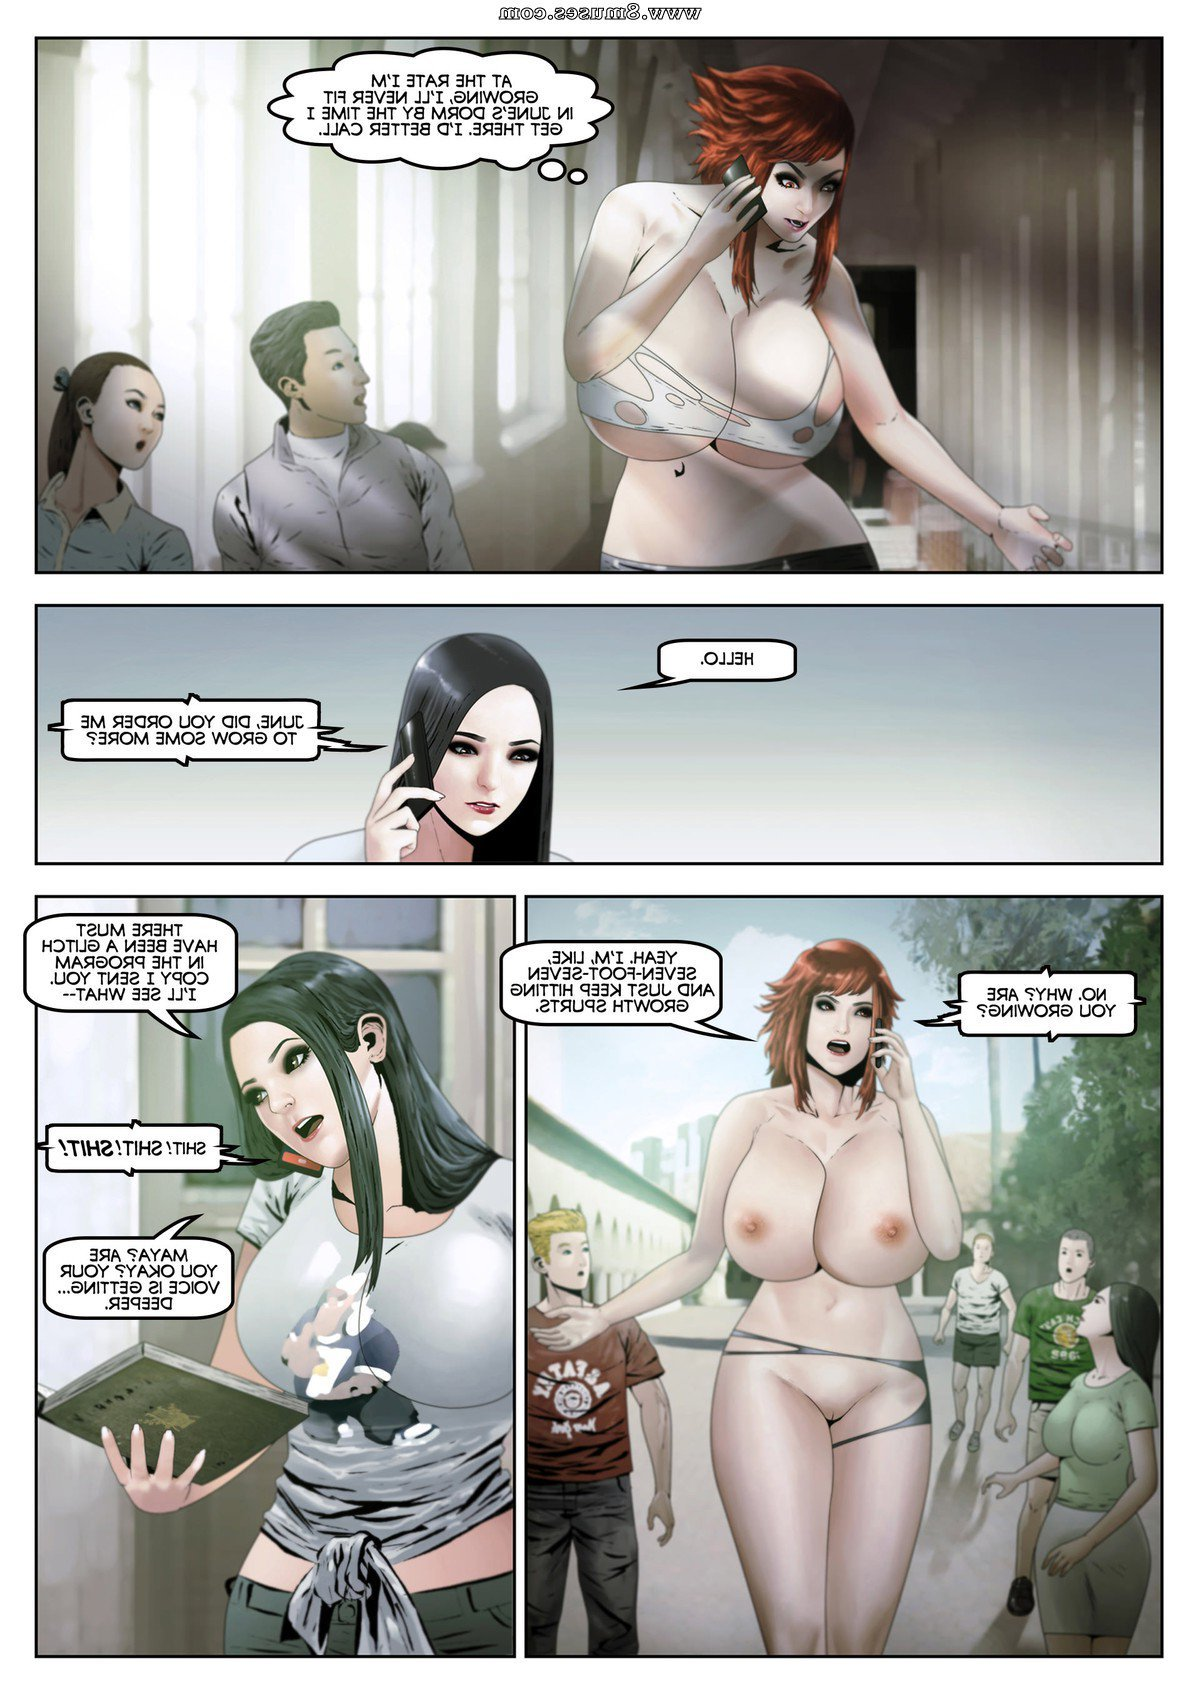 Giantess-Fan-Comics/Maya-and-June/Issue-1 Maya_and_June_-_Issue_1_16.jpg